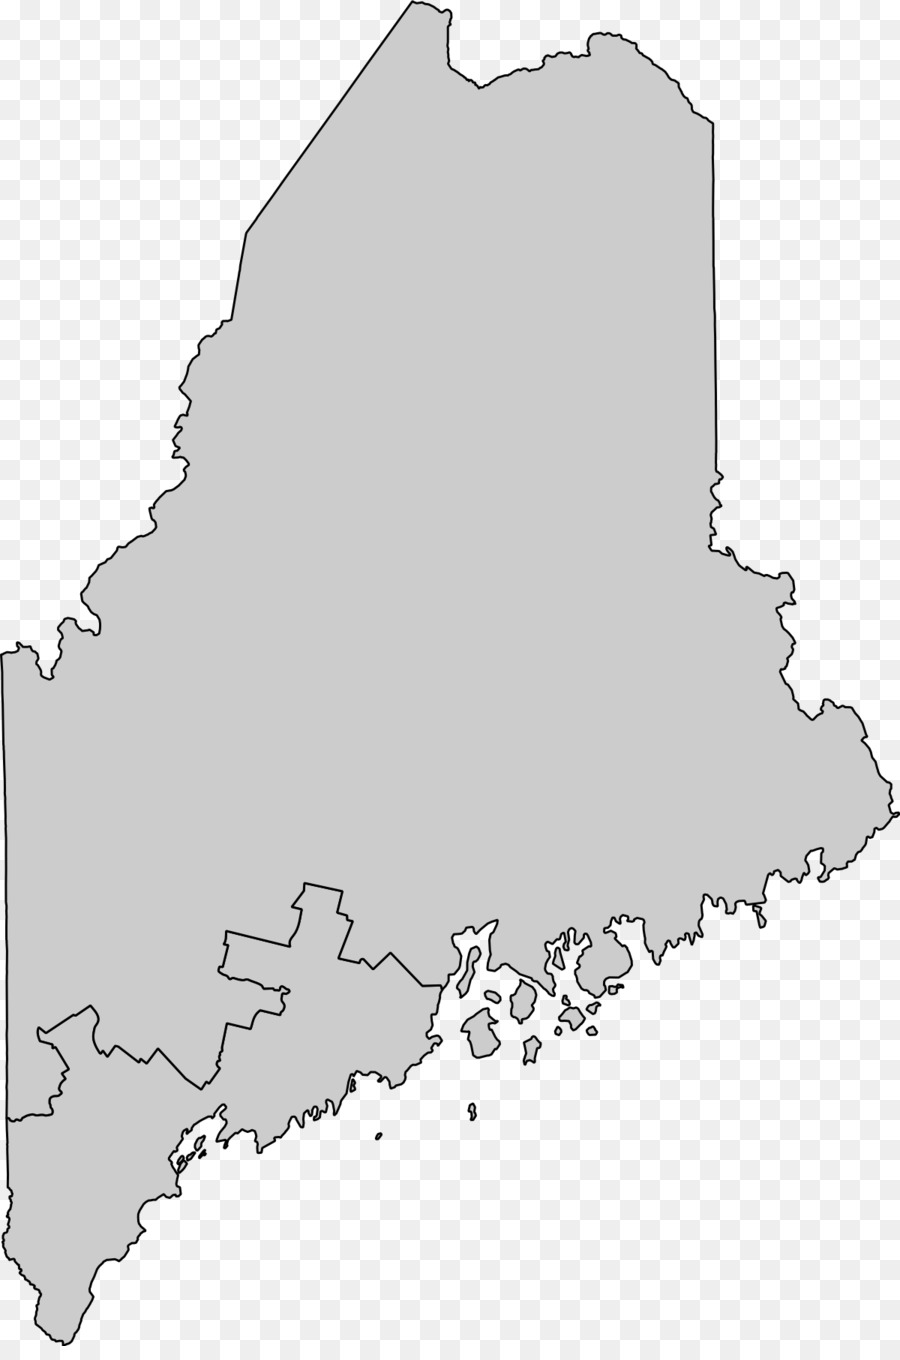 gray maine maps World Map Png Download 1200 1794 Free Transparent Maine Maine gray maine maps